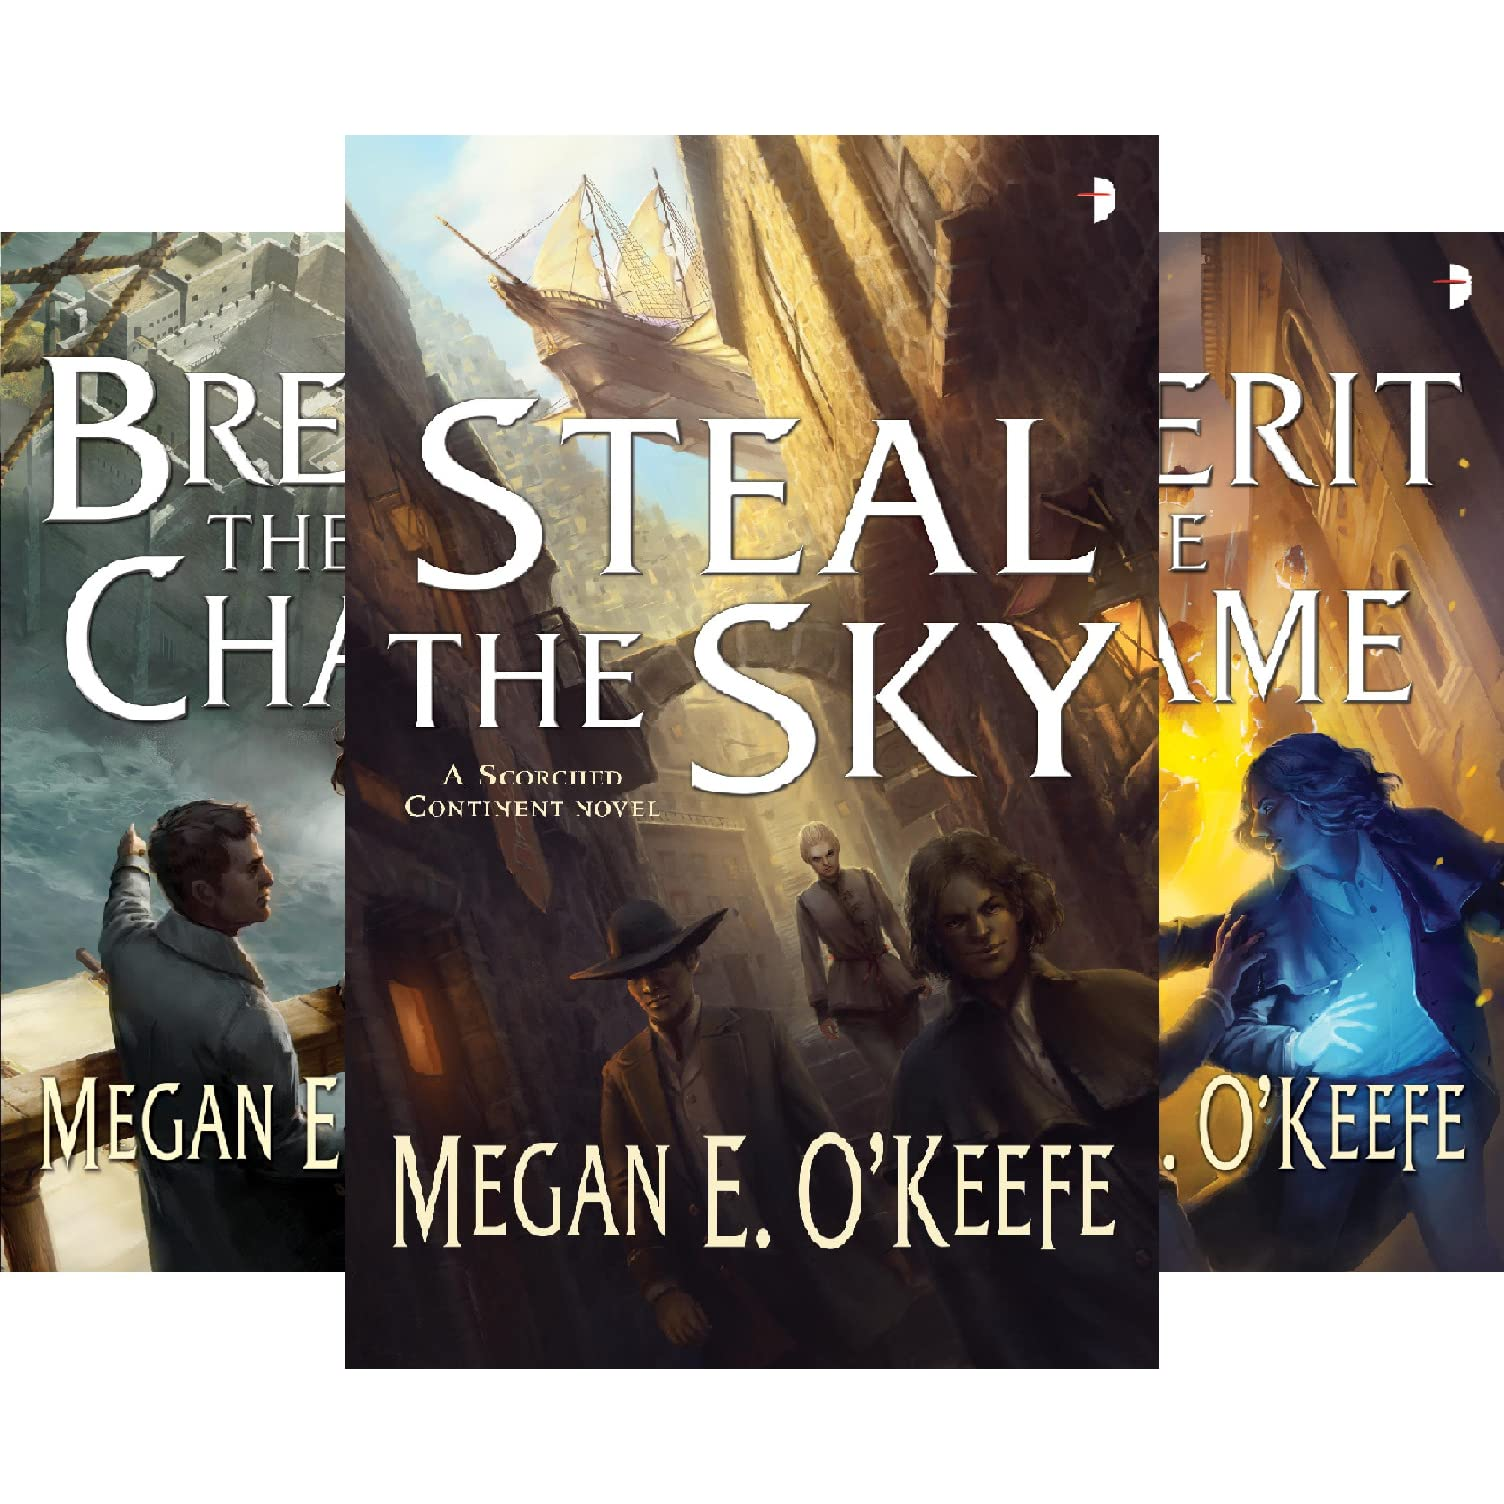 The Scorched Continent (3 Book Series) by Megan E. O'Keefe